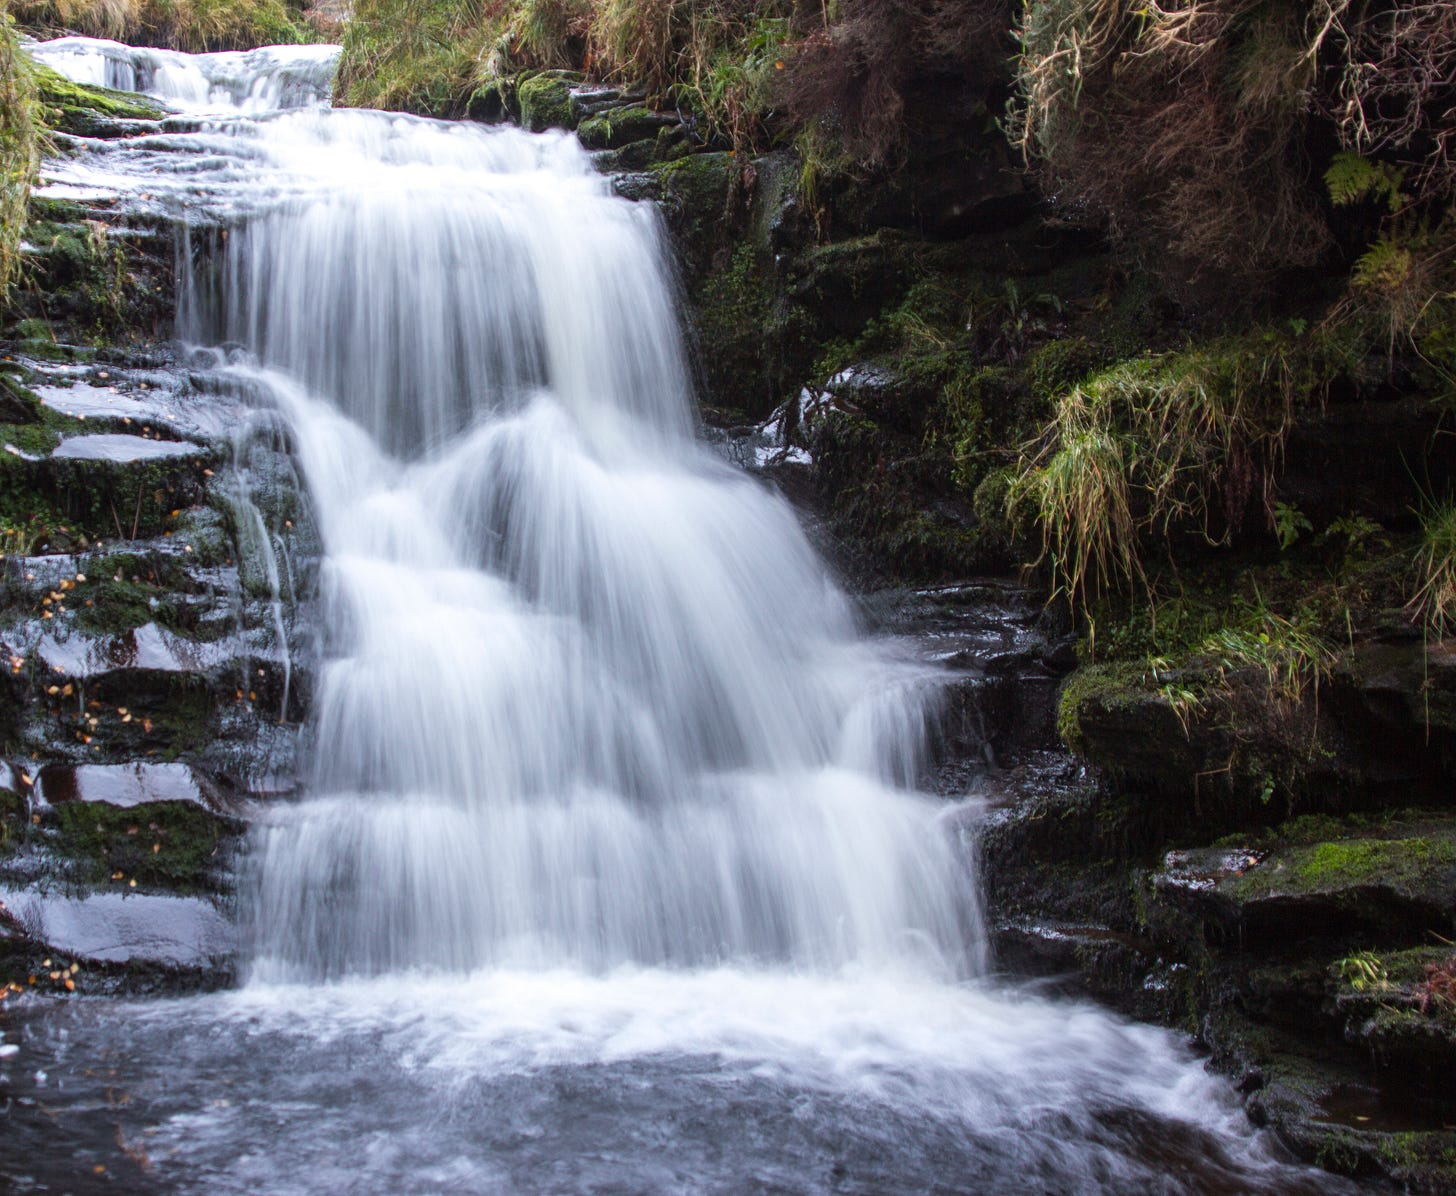 Waterfall along Grindsbrook in the Peak District